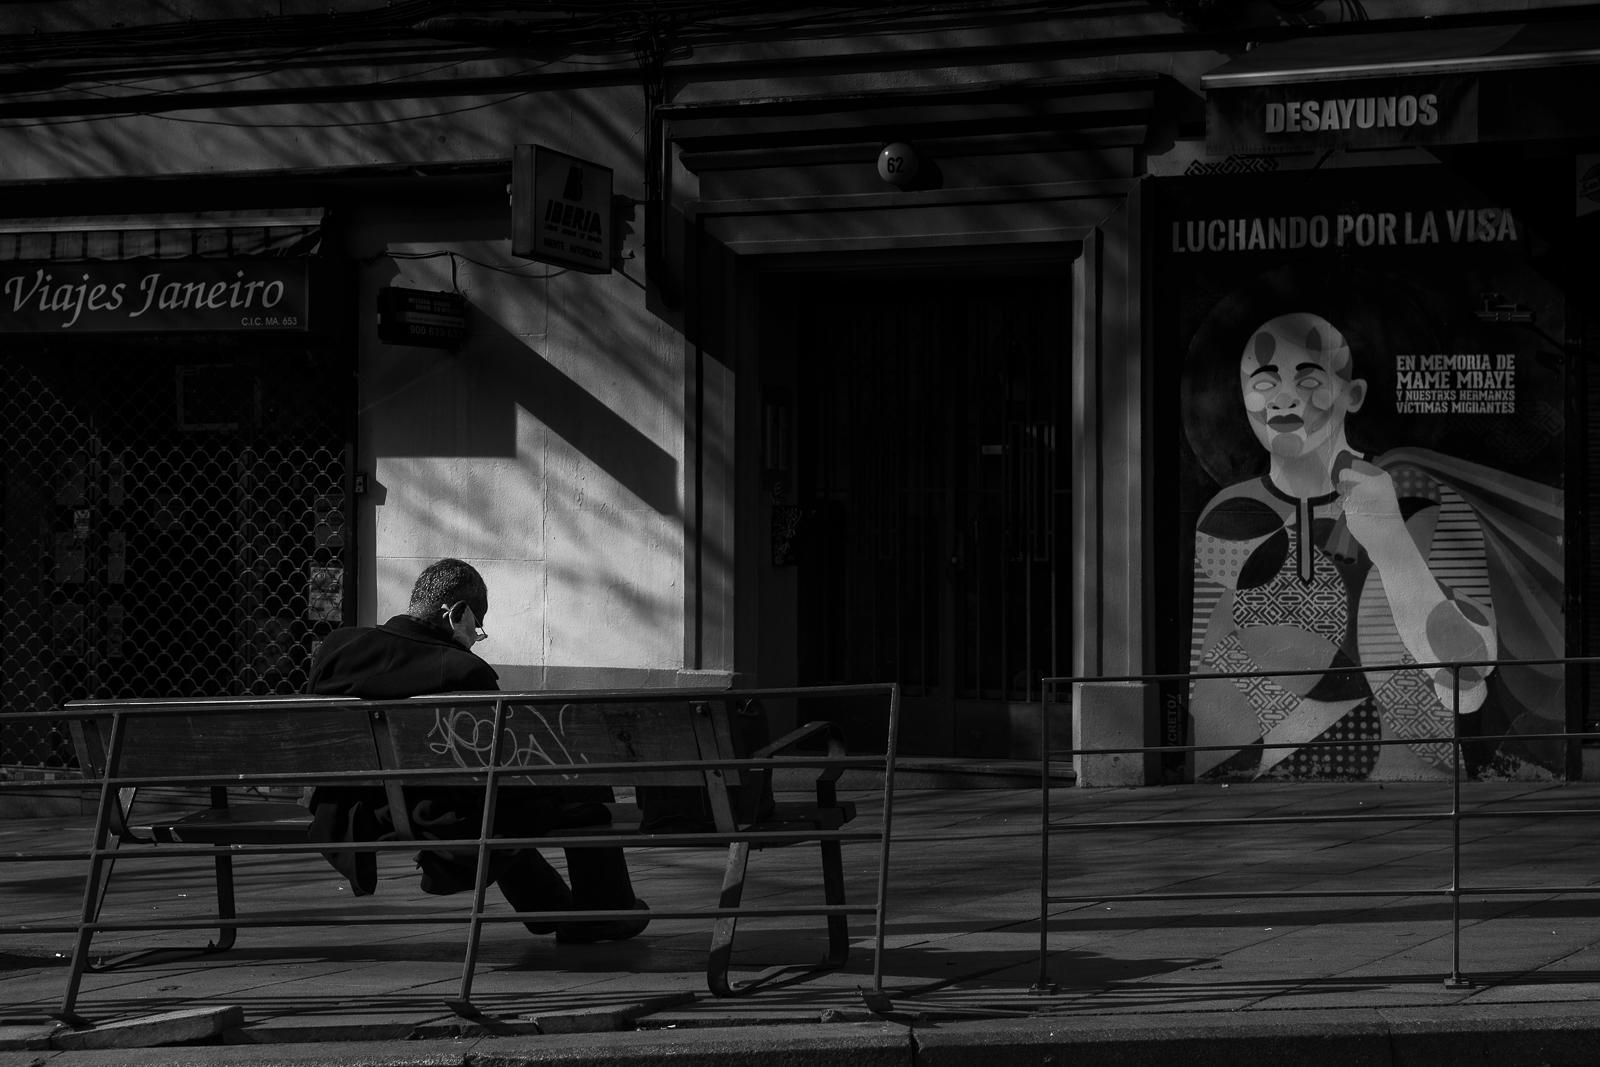 A man siiting in a bench in the empty sterets of Madrid, Spain during the coronavirus lockdown.